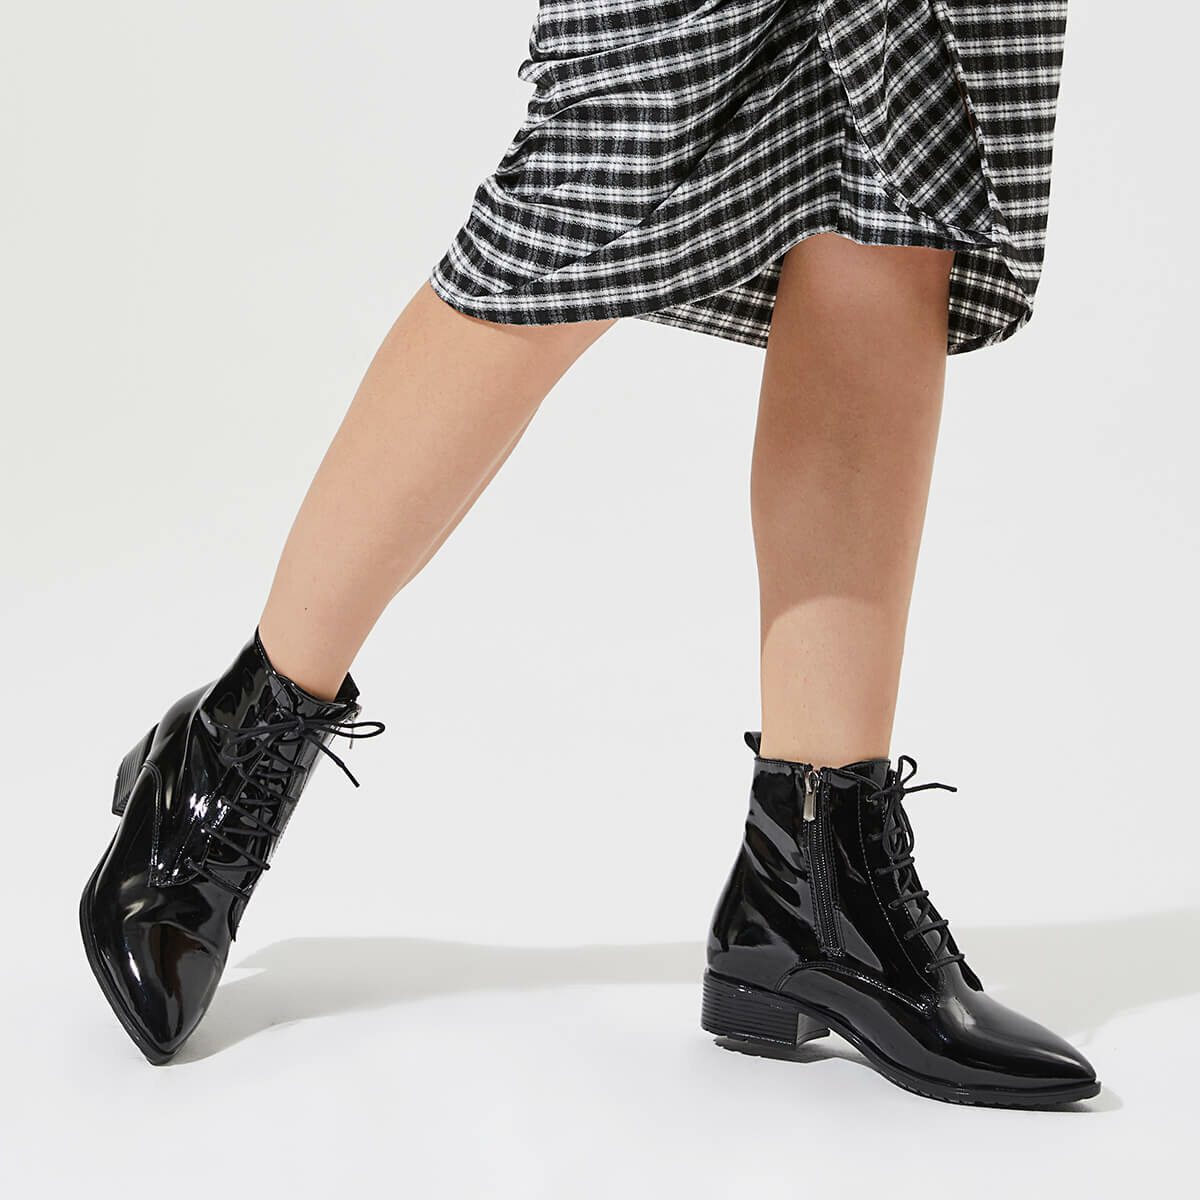 FLO MERAPI85Z PATENT LEATHER Black Women 'S Boots BUTIGO